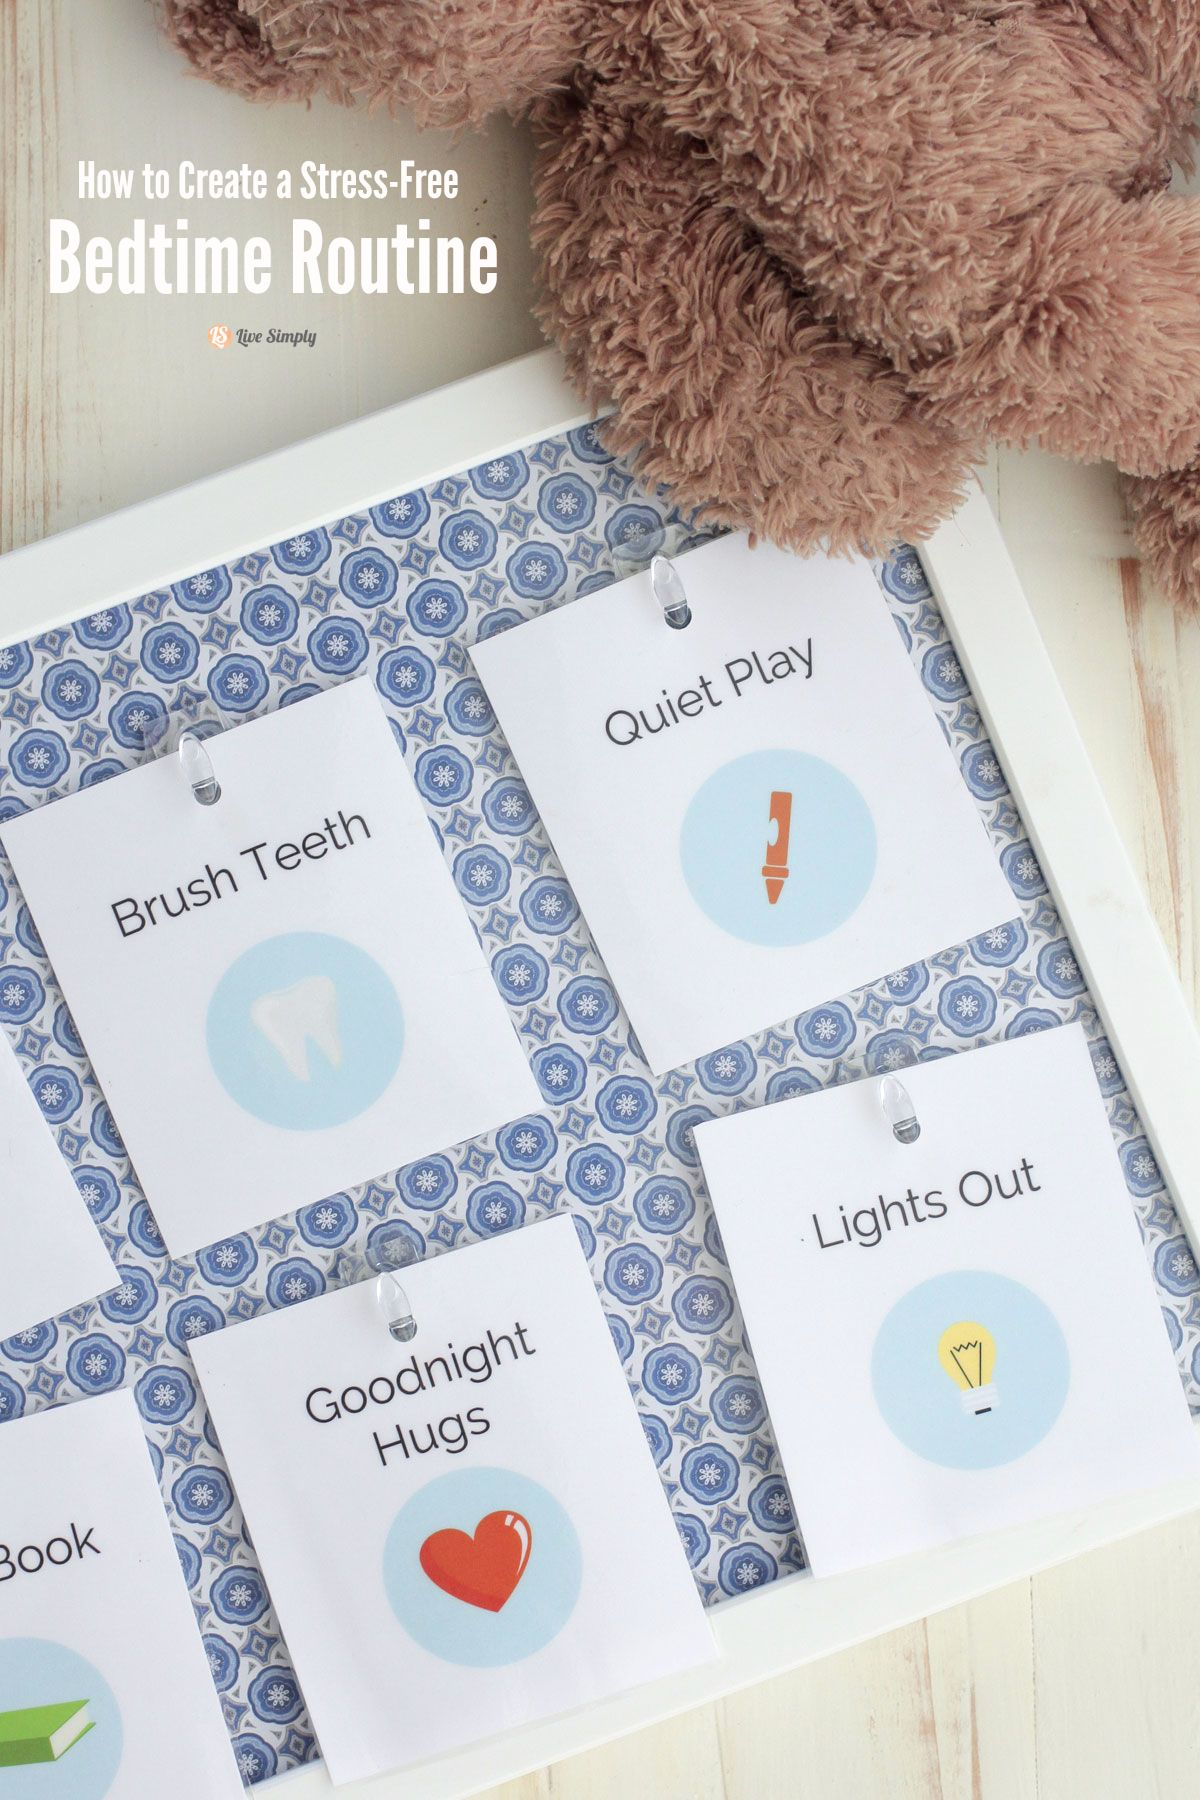 How To Create A Stress Free Bedtime Routine Printable